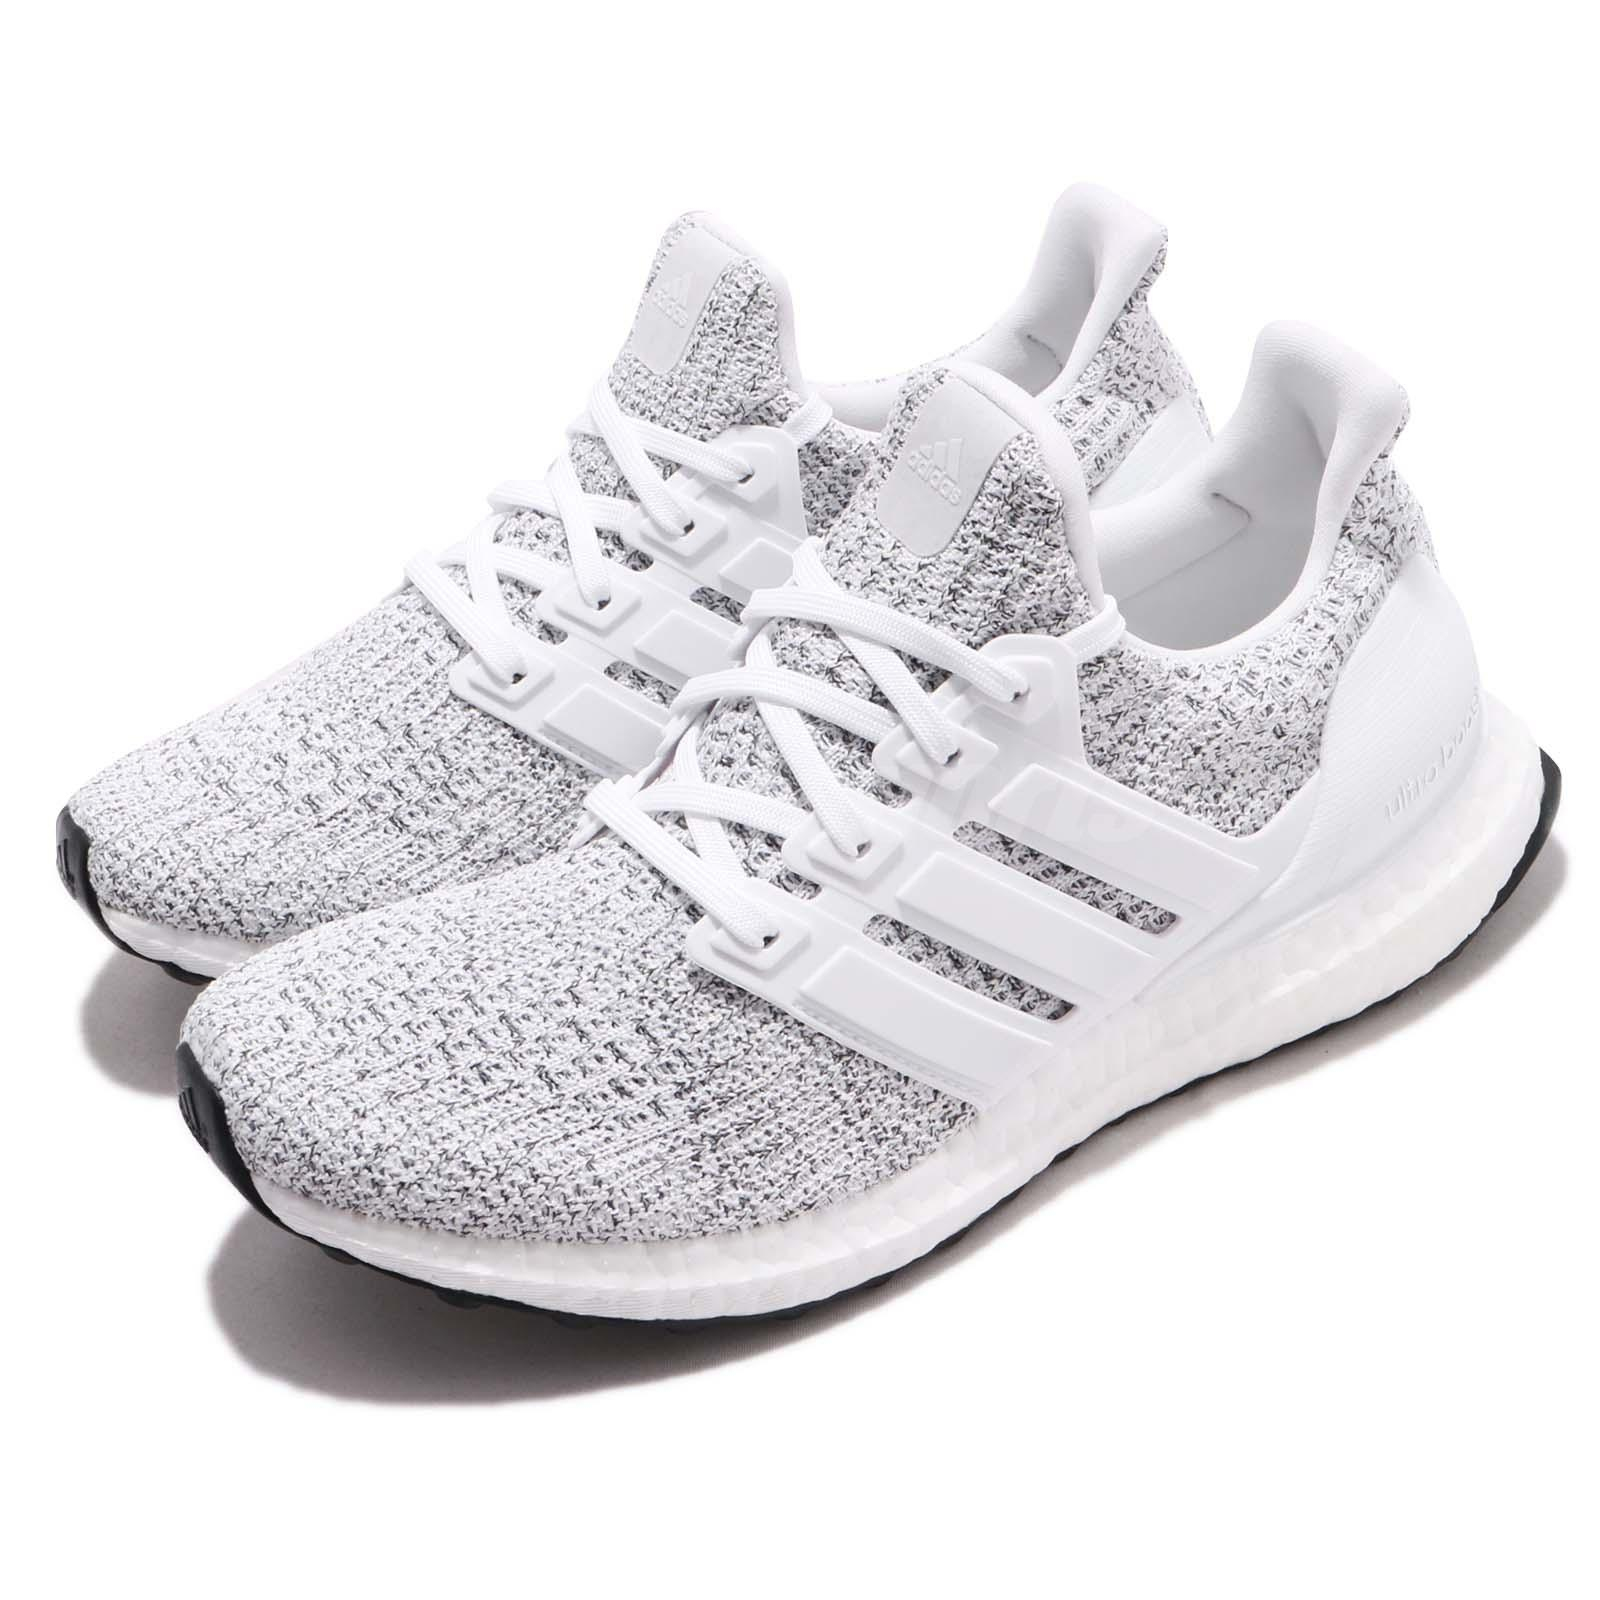 9dd0e3a434e33 Details about adidas UltraBOOST W 4.0 Non Dyed White Women Running Shoes  Sneakers F36124